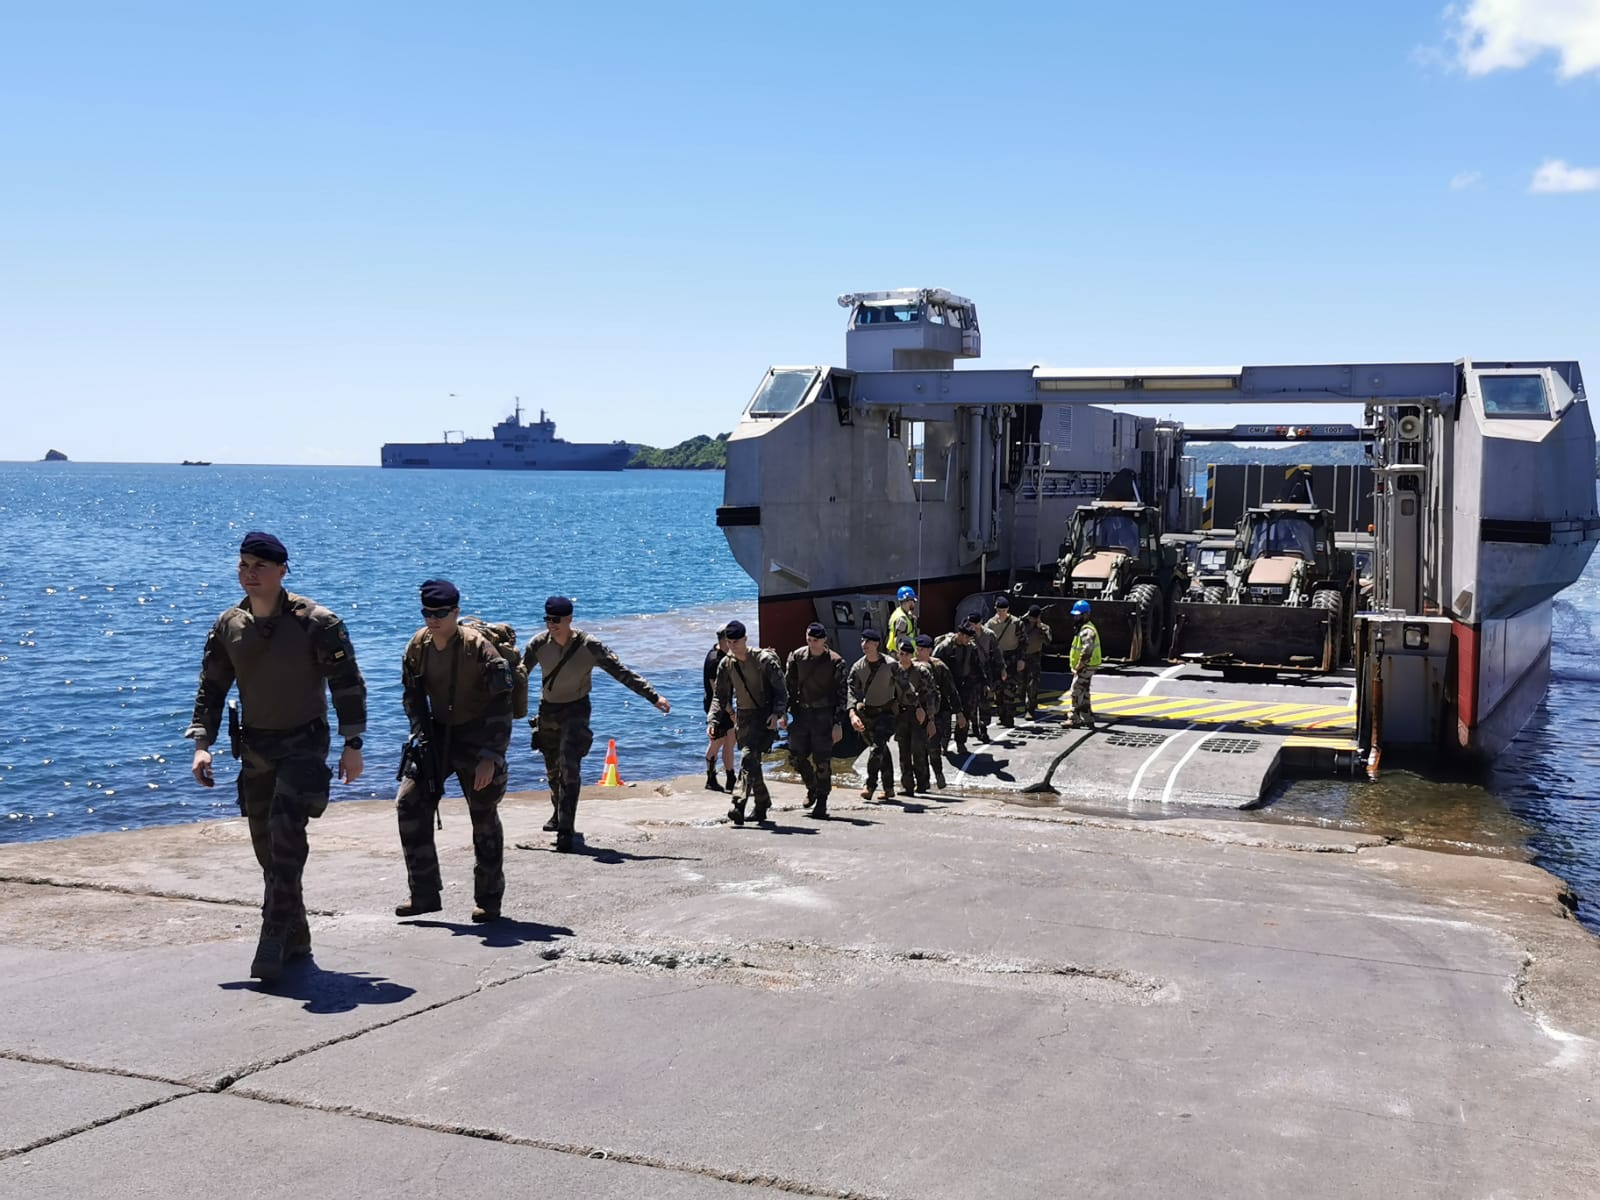 Soldiers exiting EDA-R catamaran landing craft (L-CAT) on Mayotte. Mistral can be seen in the background. French Navy Photo.